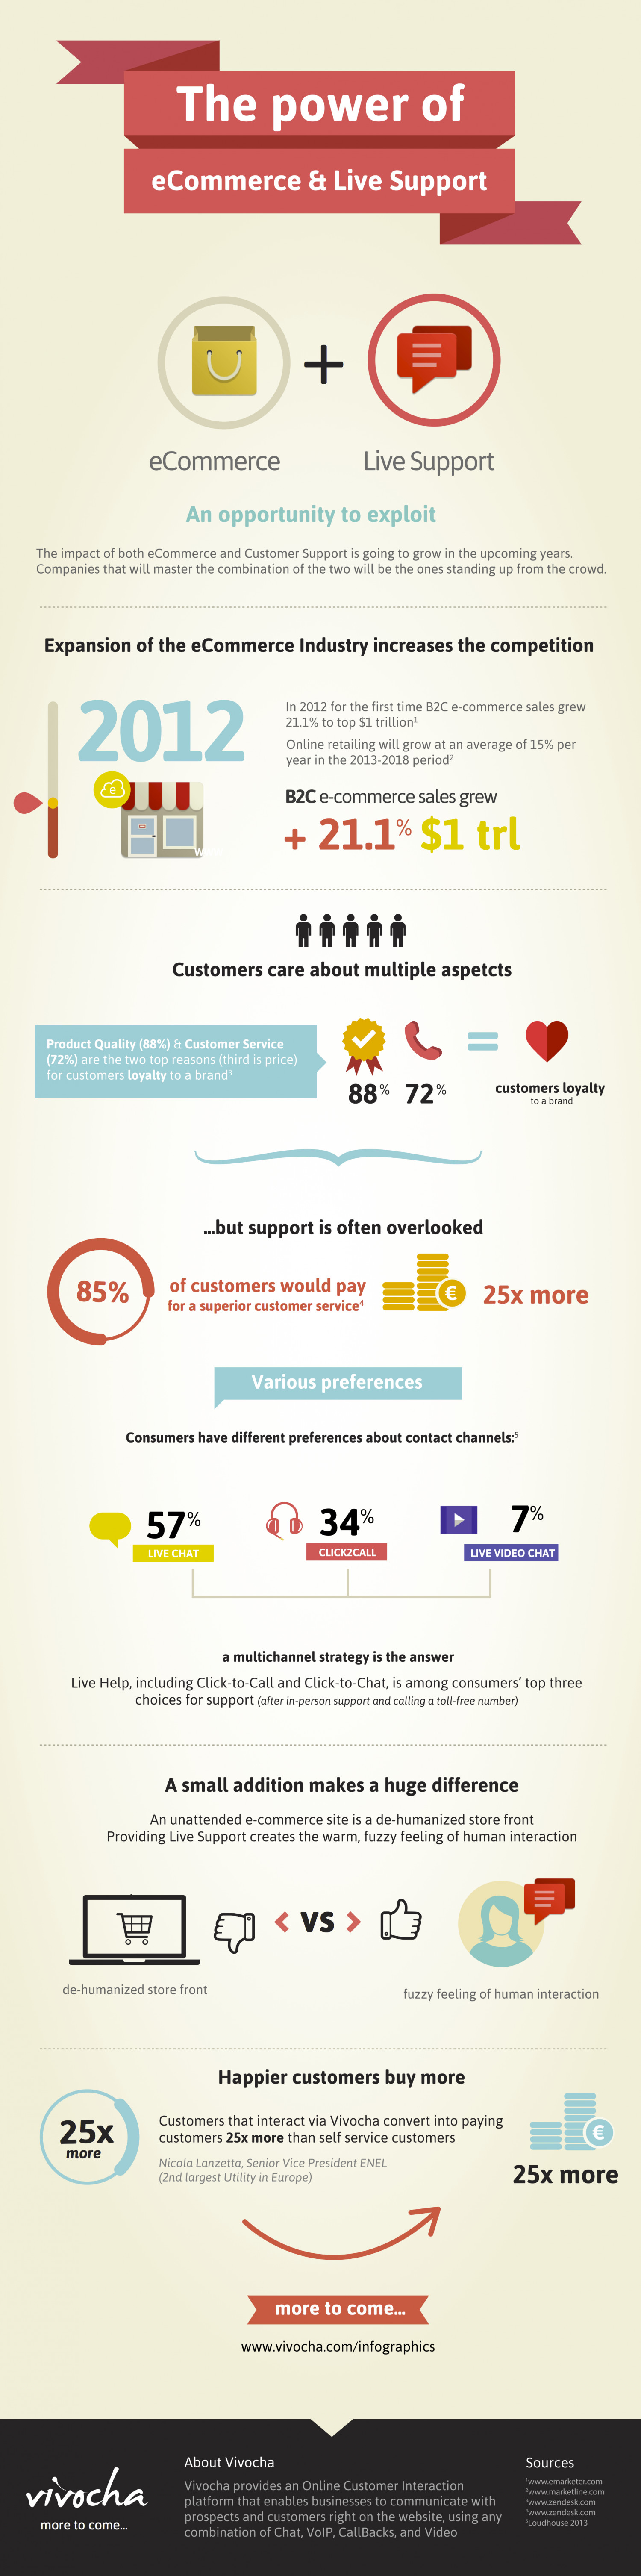 Ecommerce + Live Support Infographic